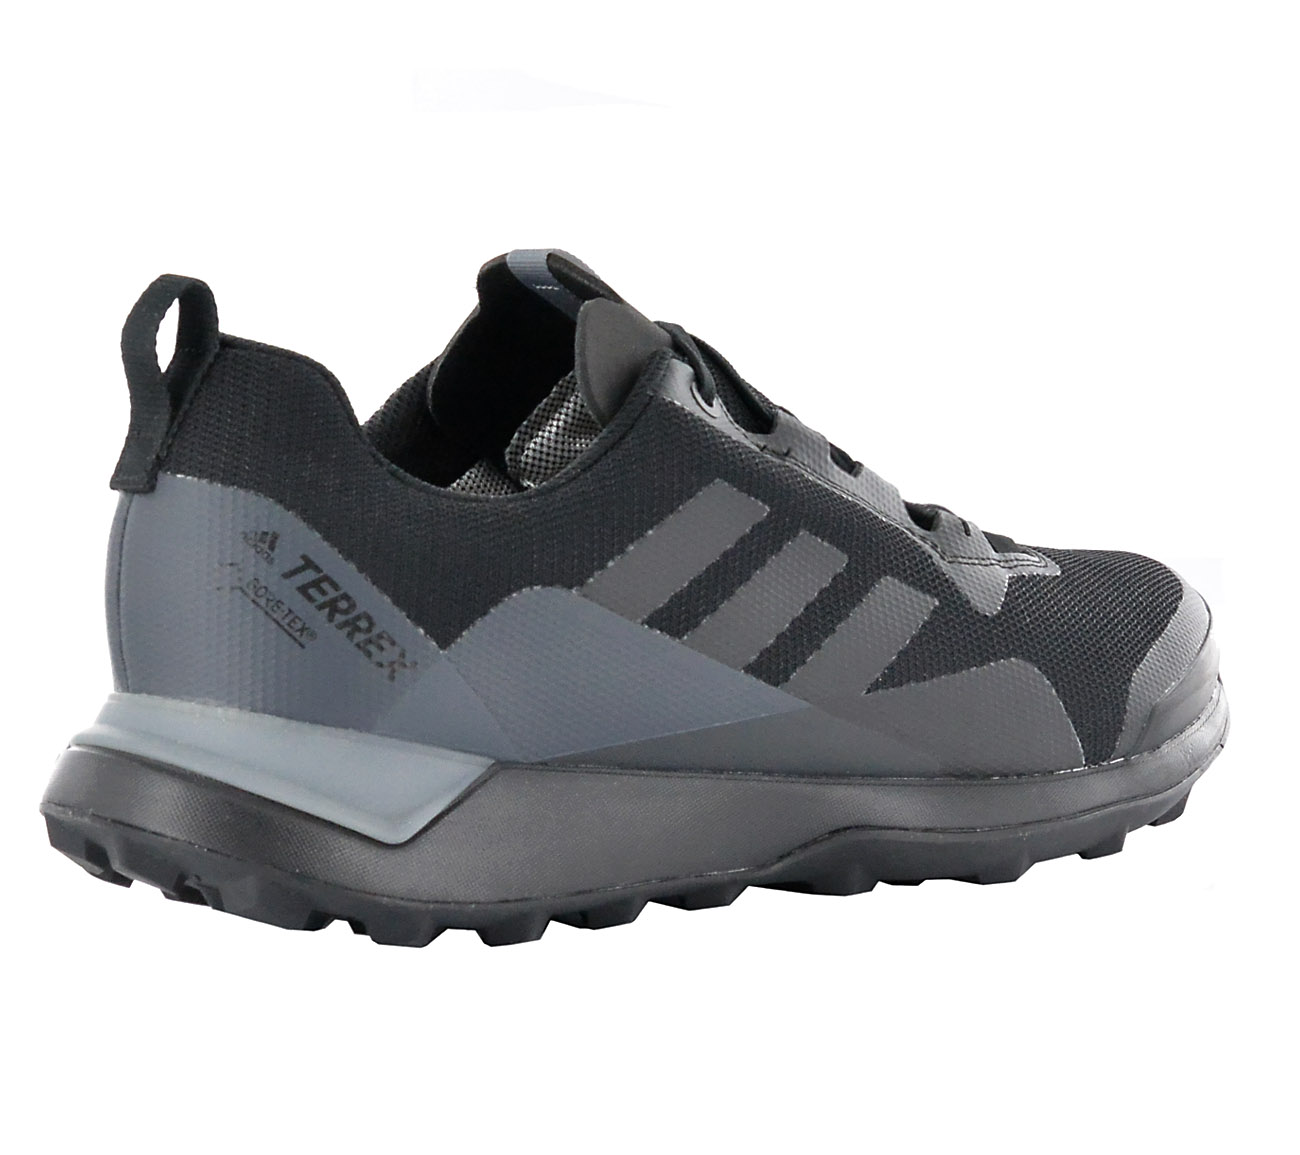 Details about Adidas Terrex Cmtk Gtx Gore tex Shoes Black Men's Hiking Shoes Trail BY2770